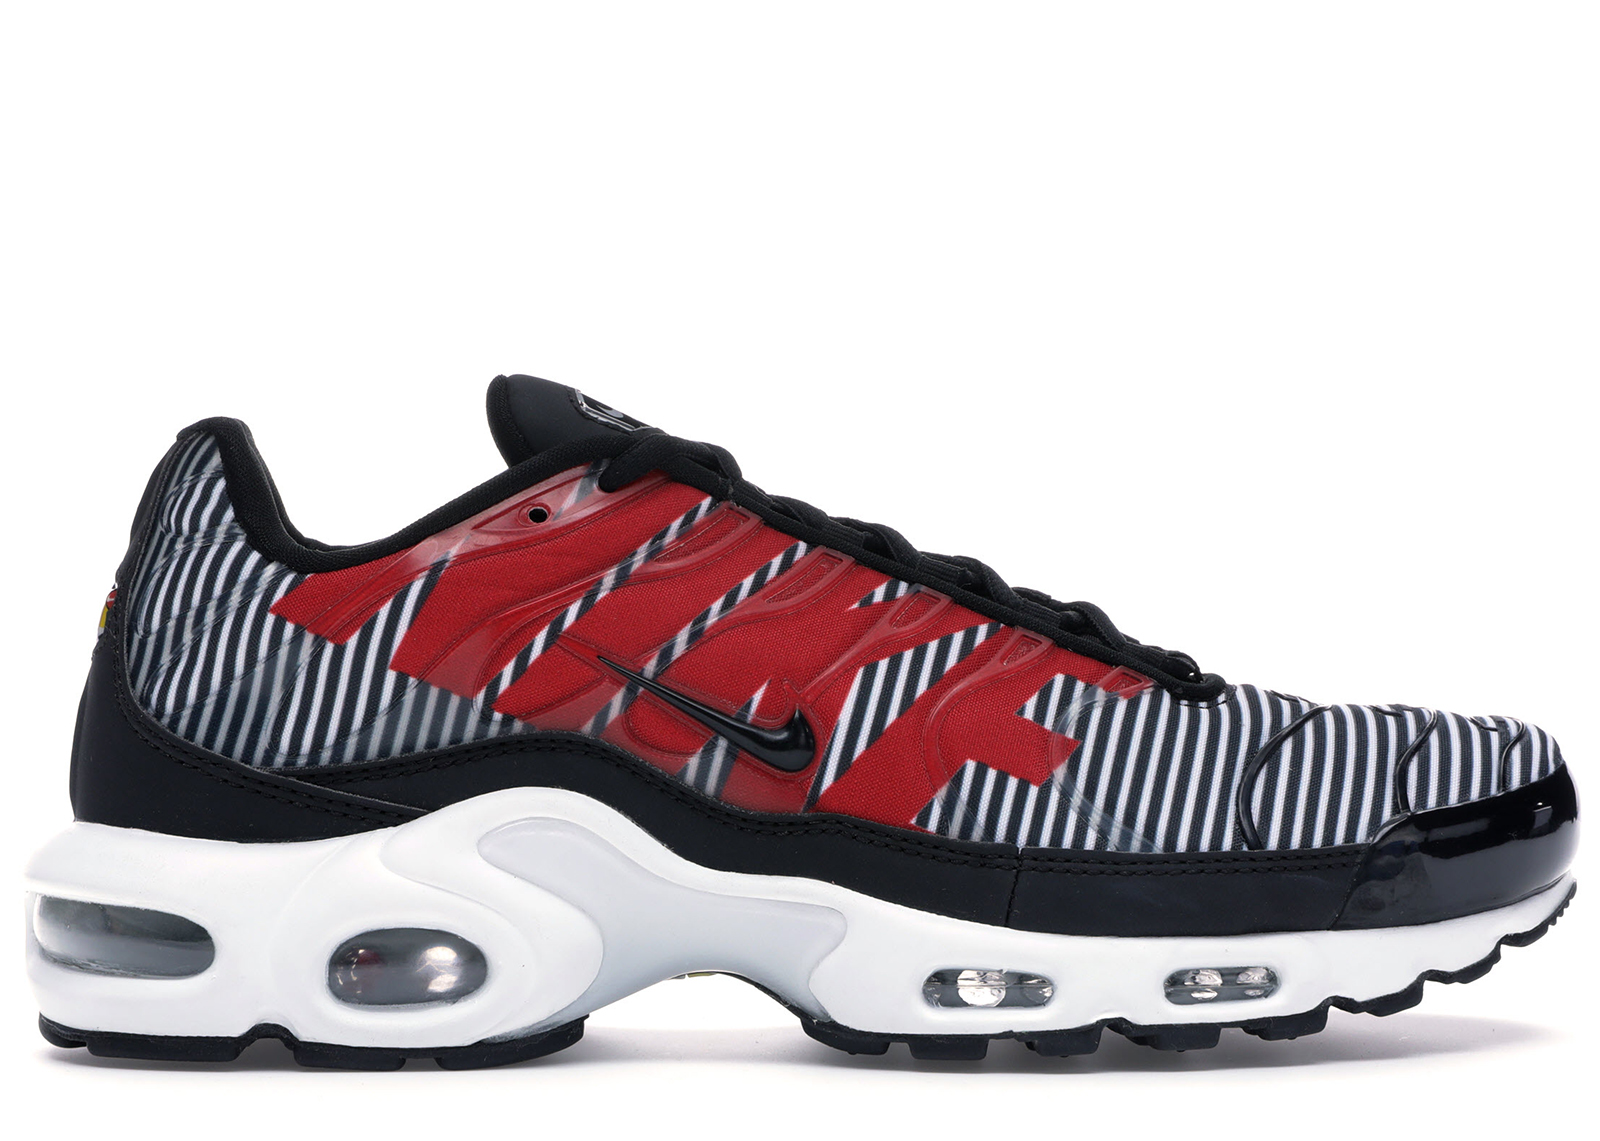 NIKE AIR MAX Plus TN SE AT0040 001 Black White Pure Platinum